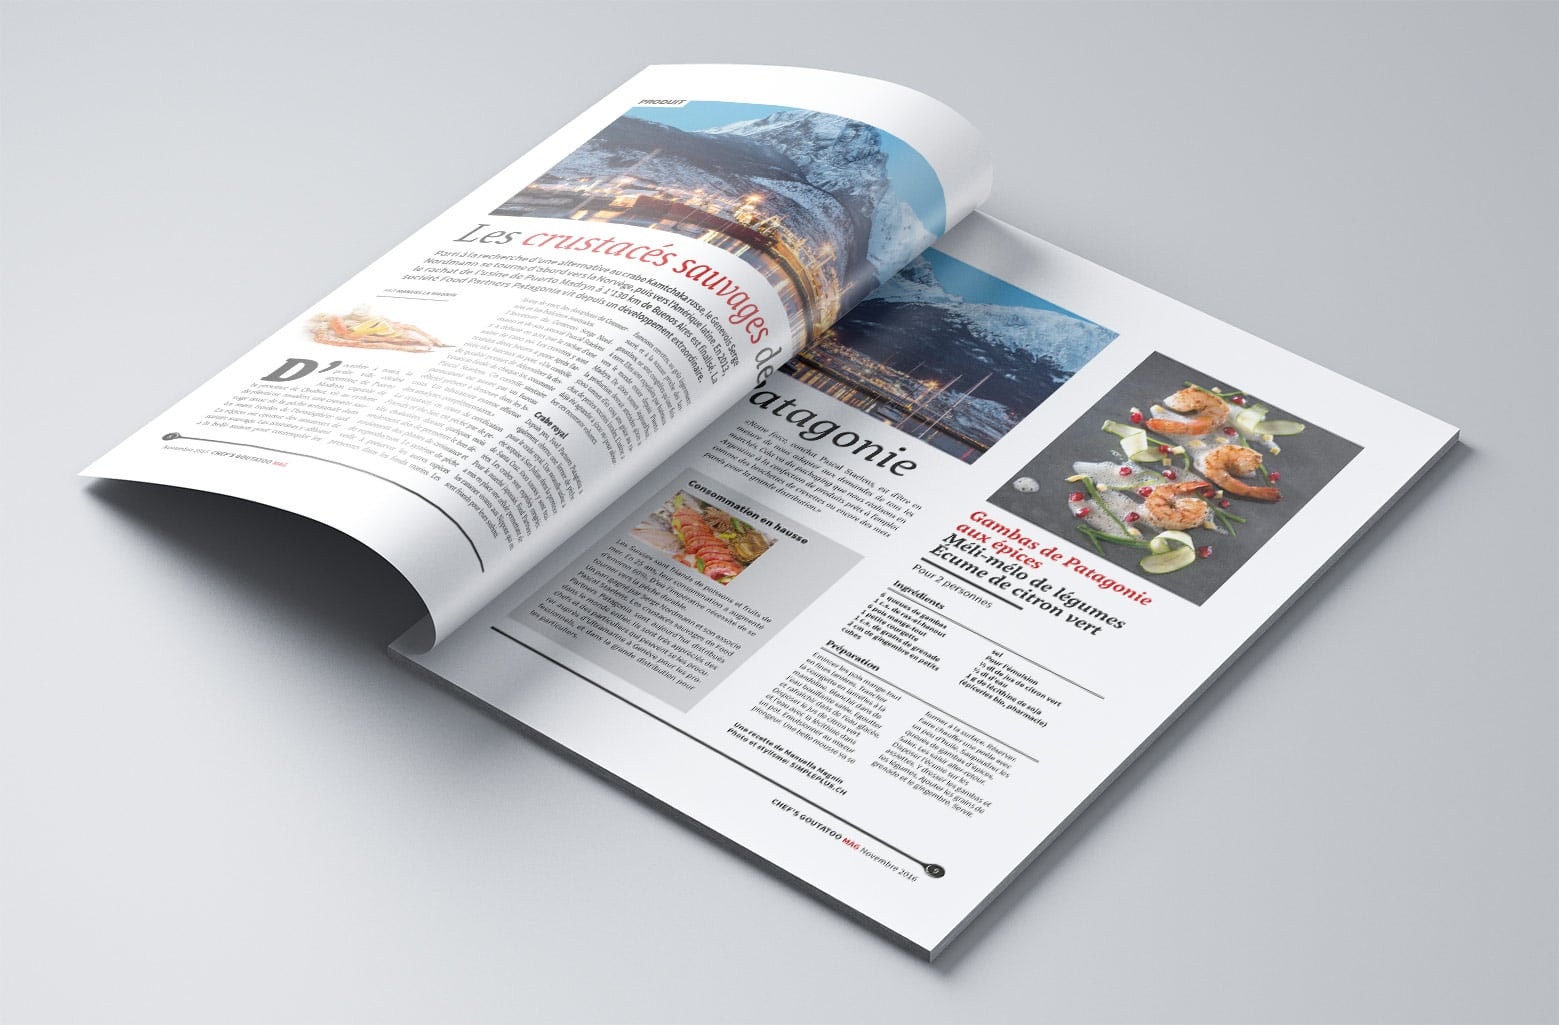 Magazine Chef's Goutatoo articles